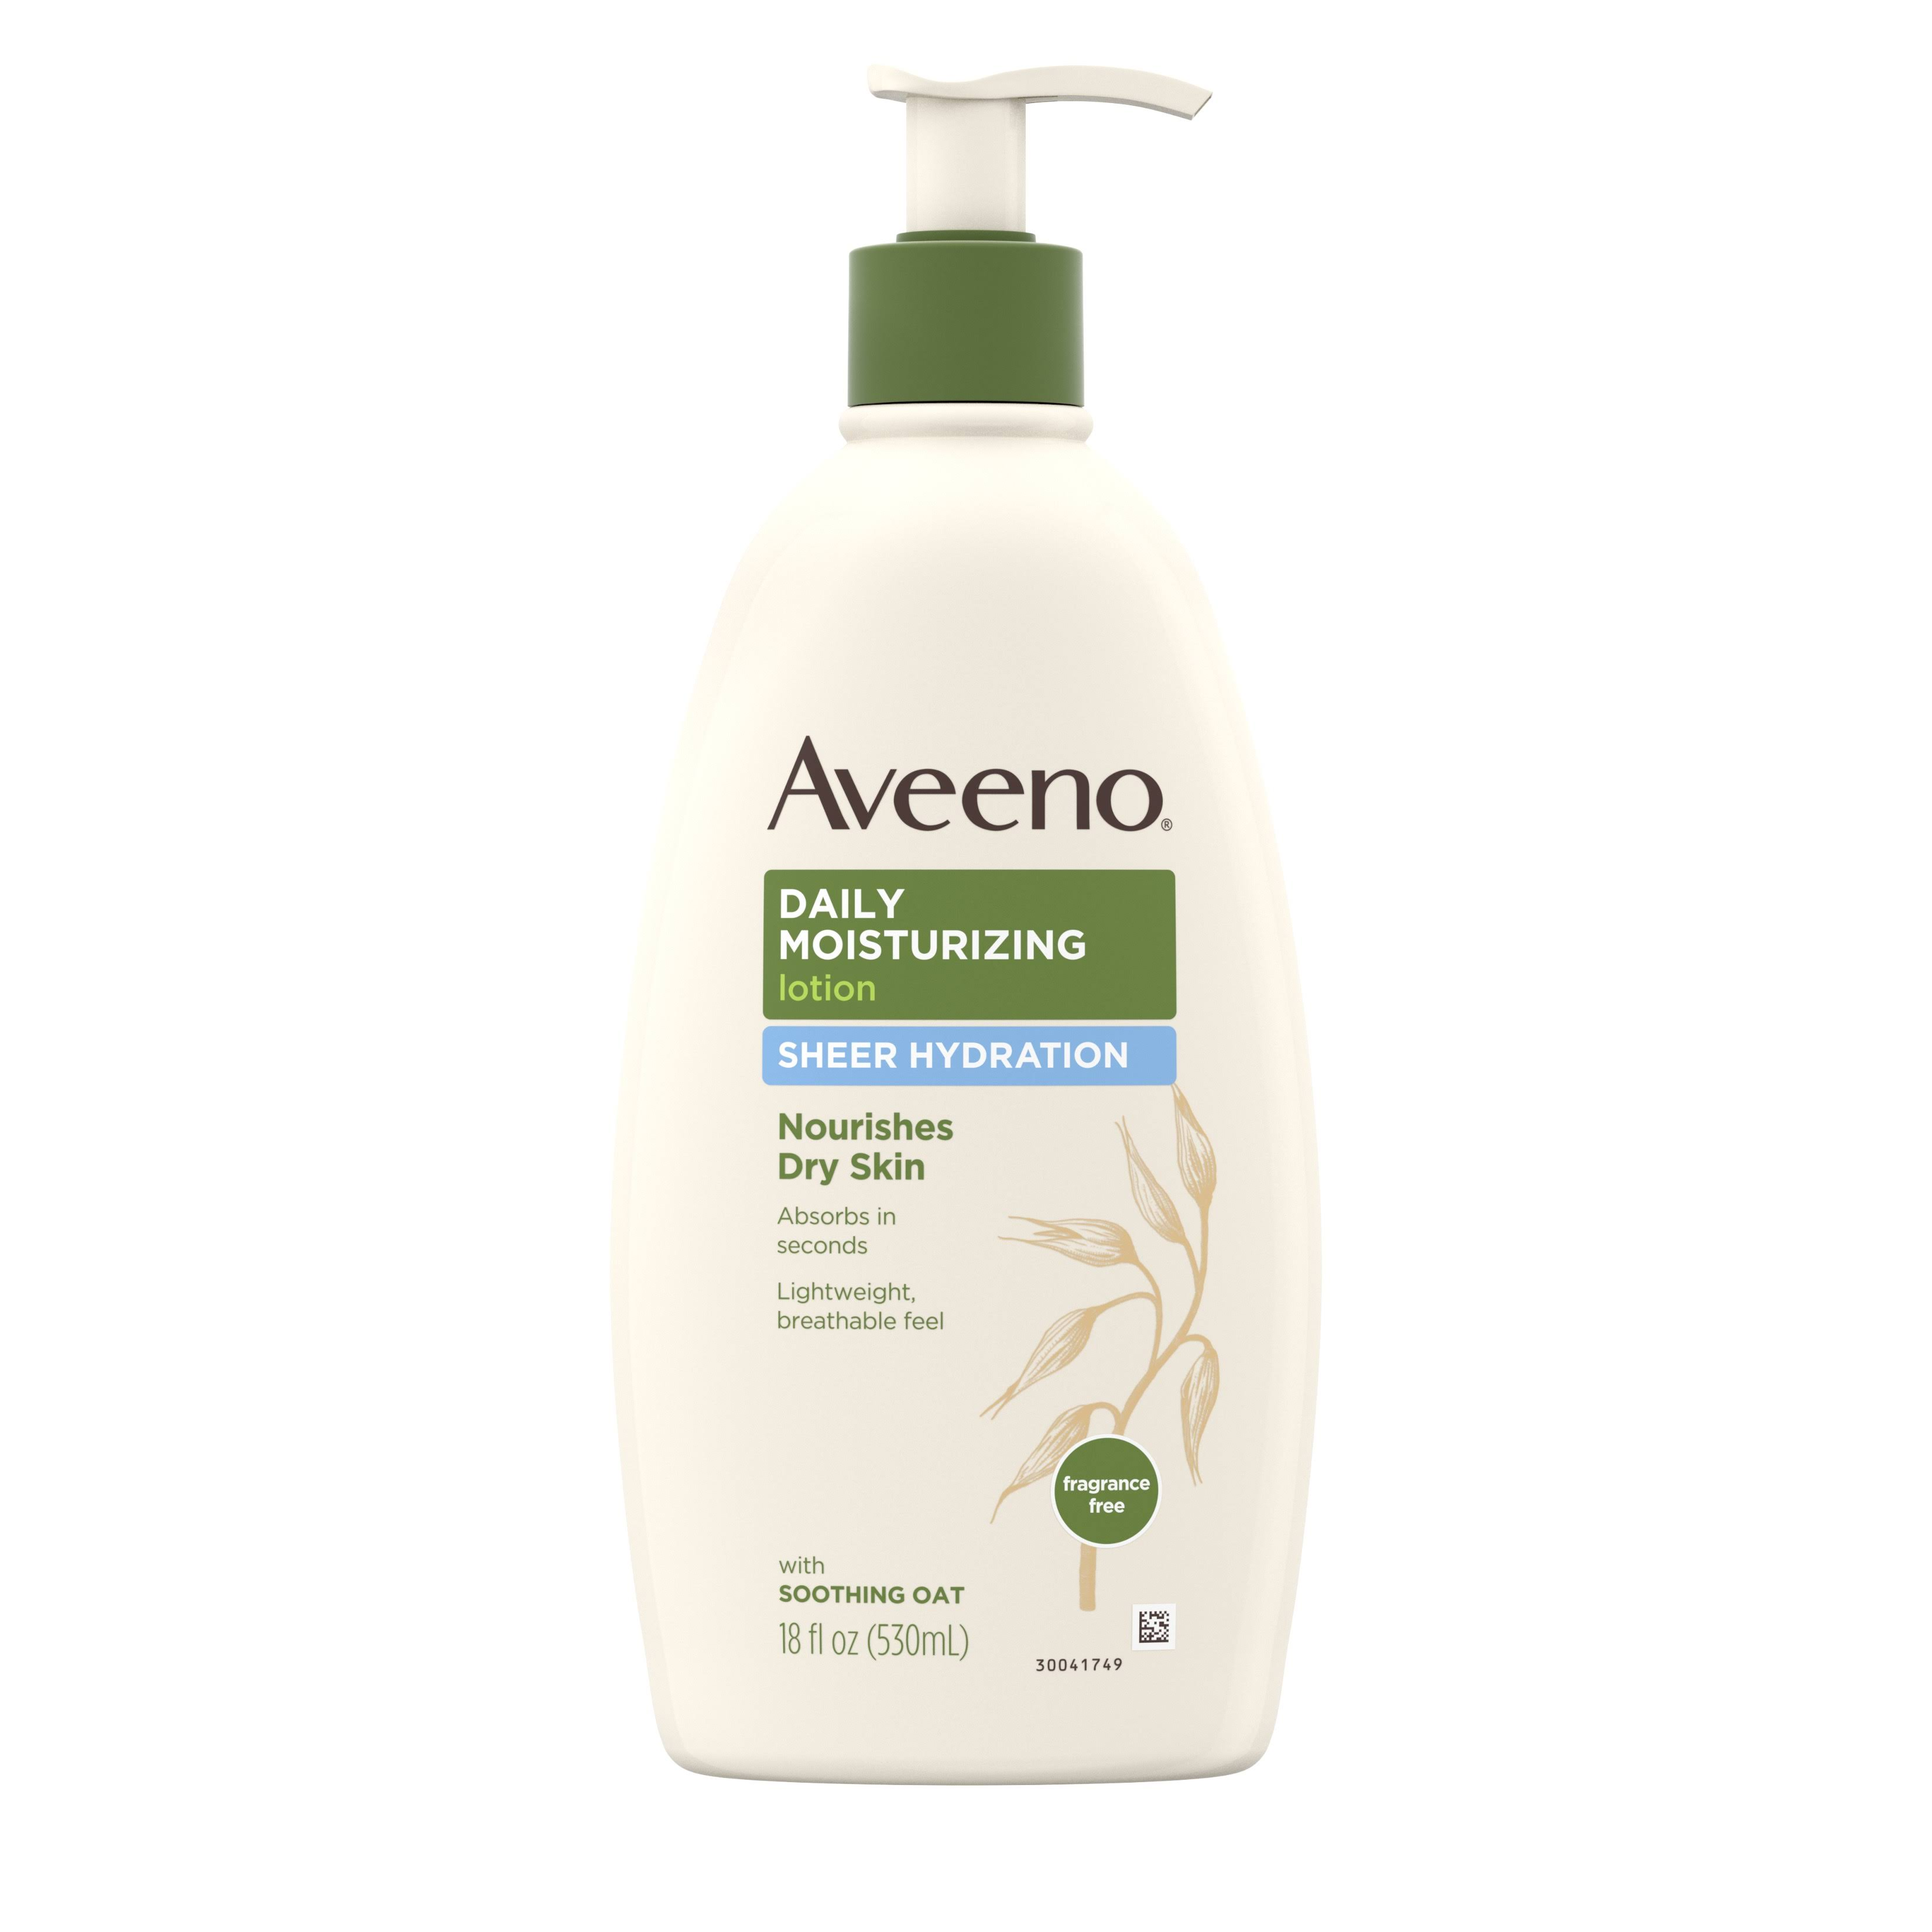 Aveeno Active Naturals Daily Moisturizing Sheer Hydration Lotion - 18 oz